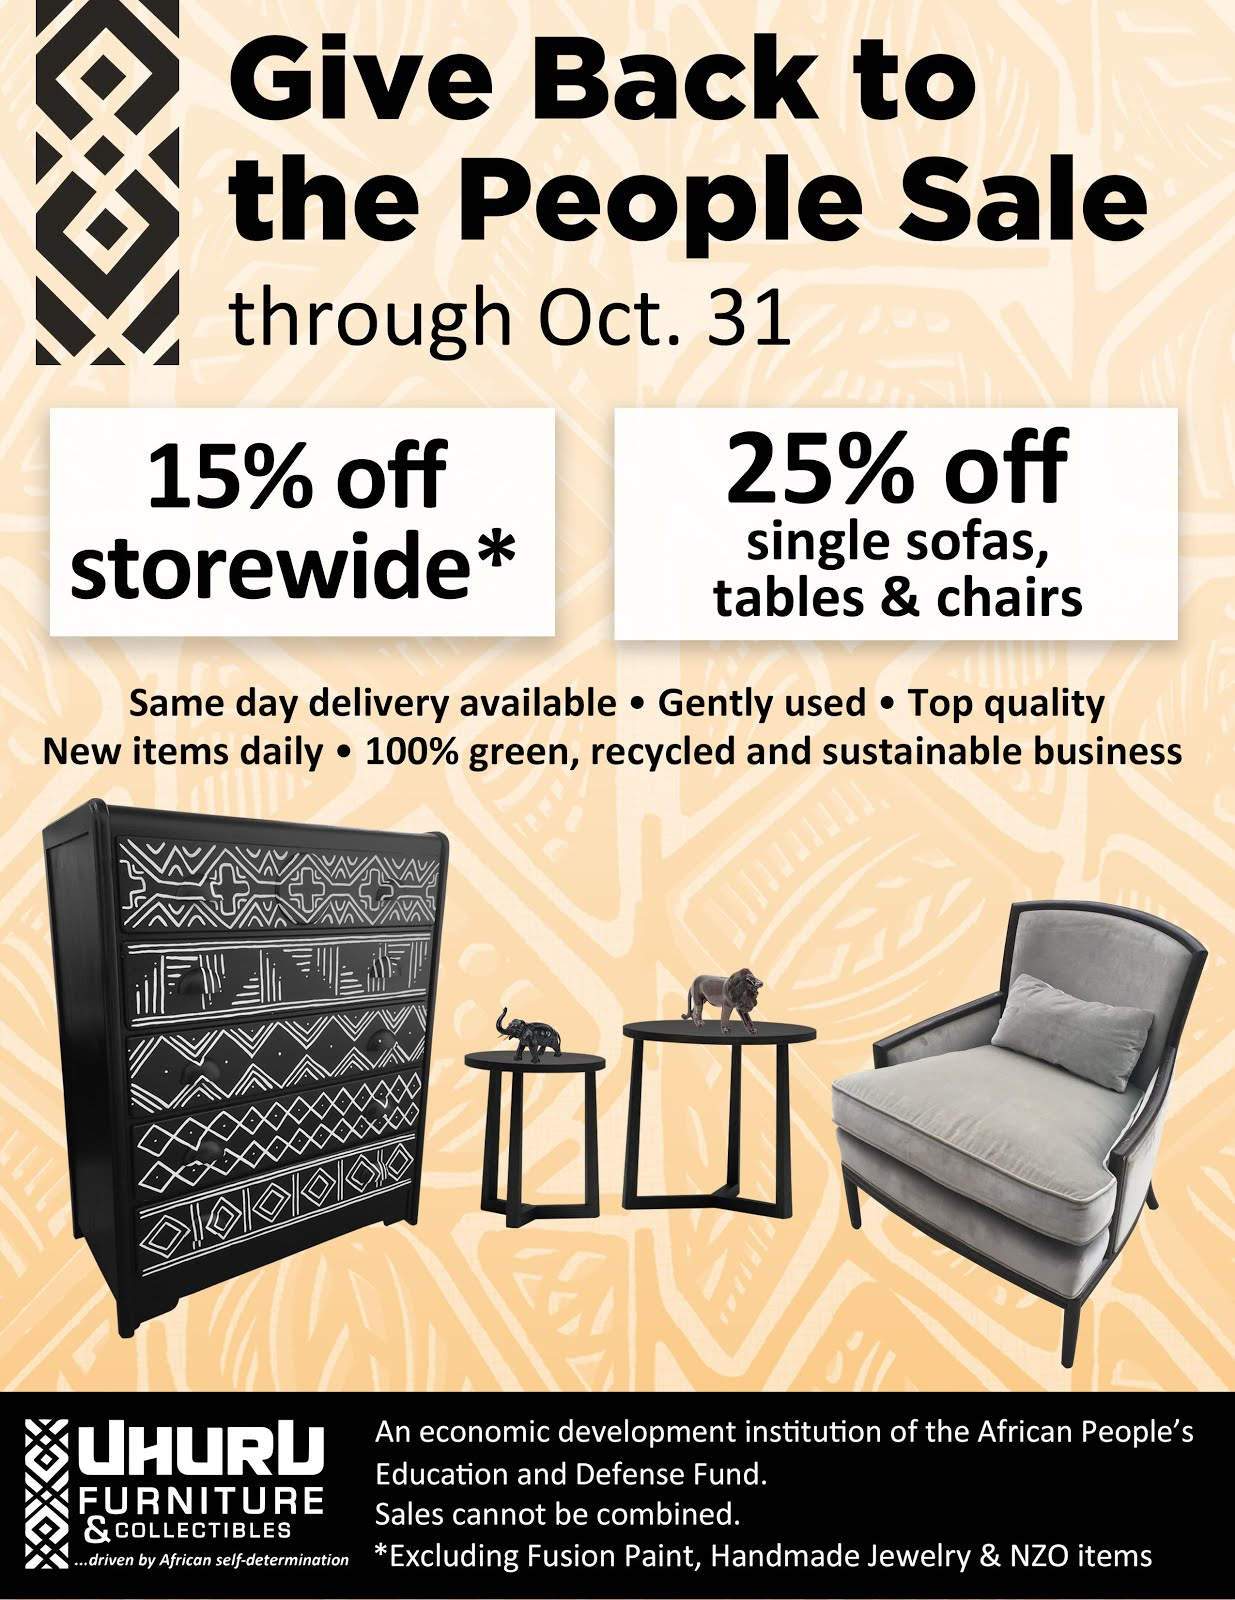 This month at Uhuru Furniture: